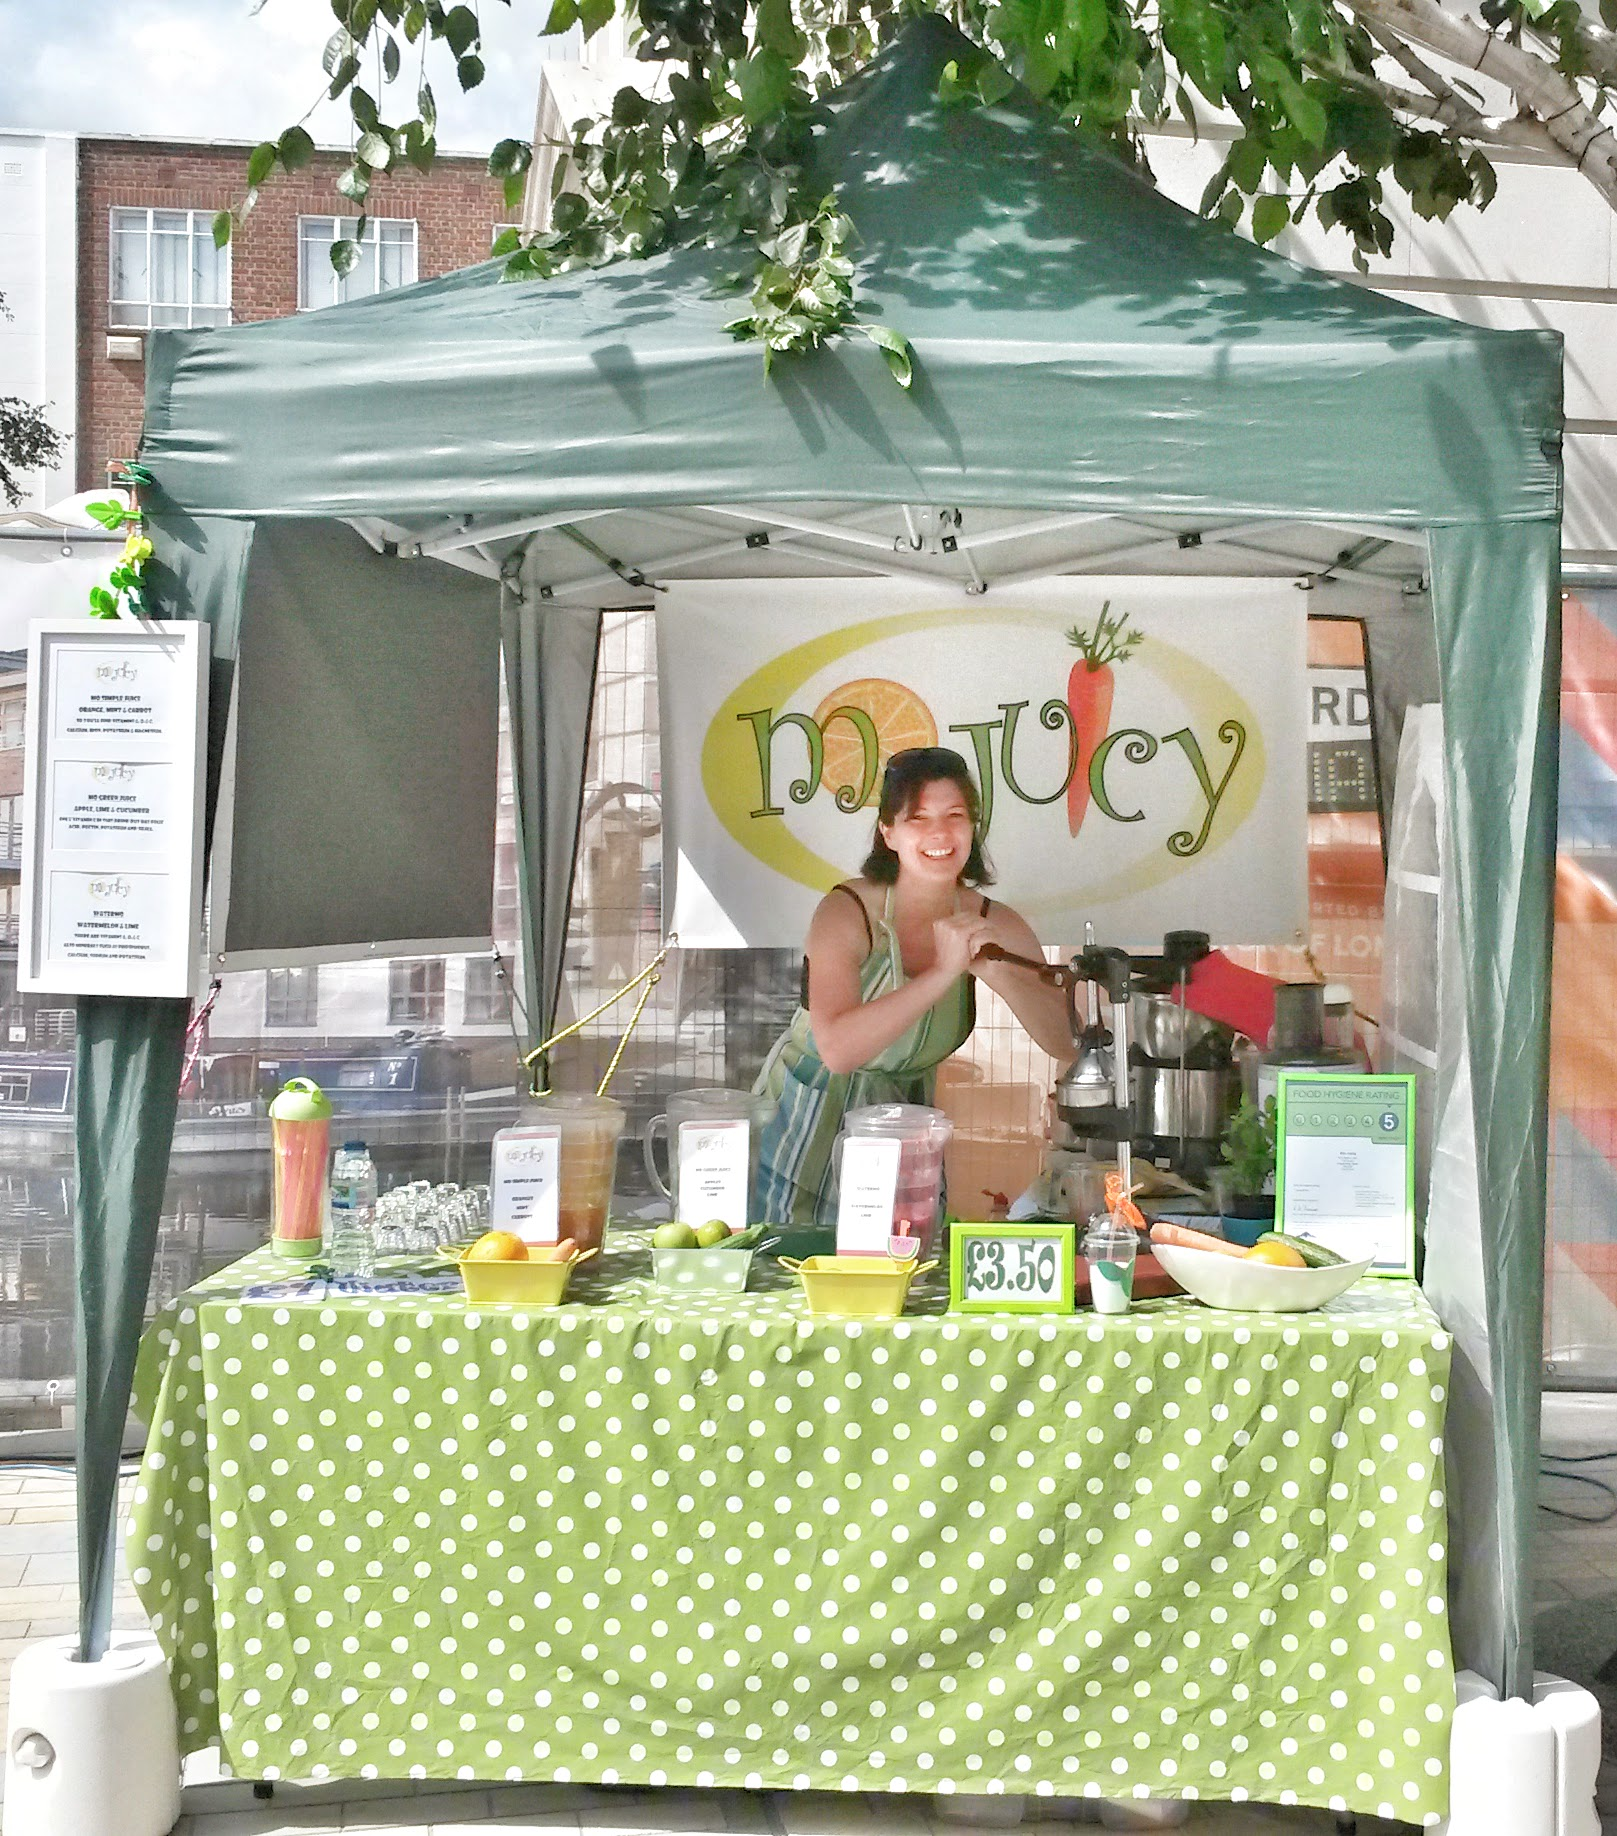 Mo Juicy Mobile Juice Bar in action at Brentford Market in the early days.